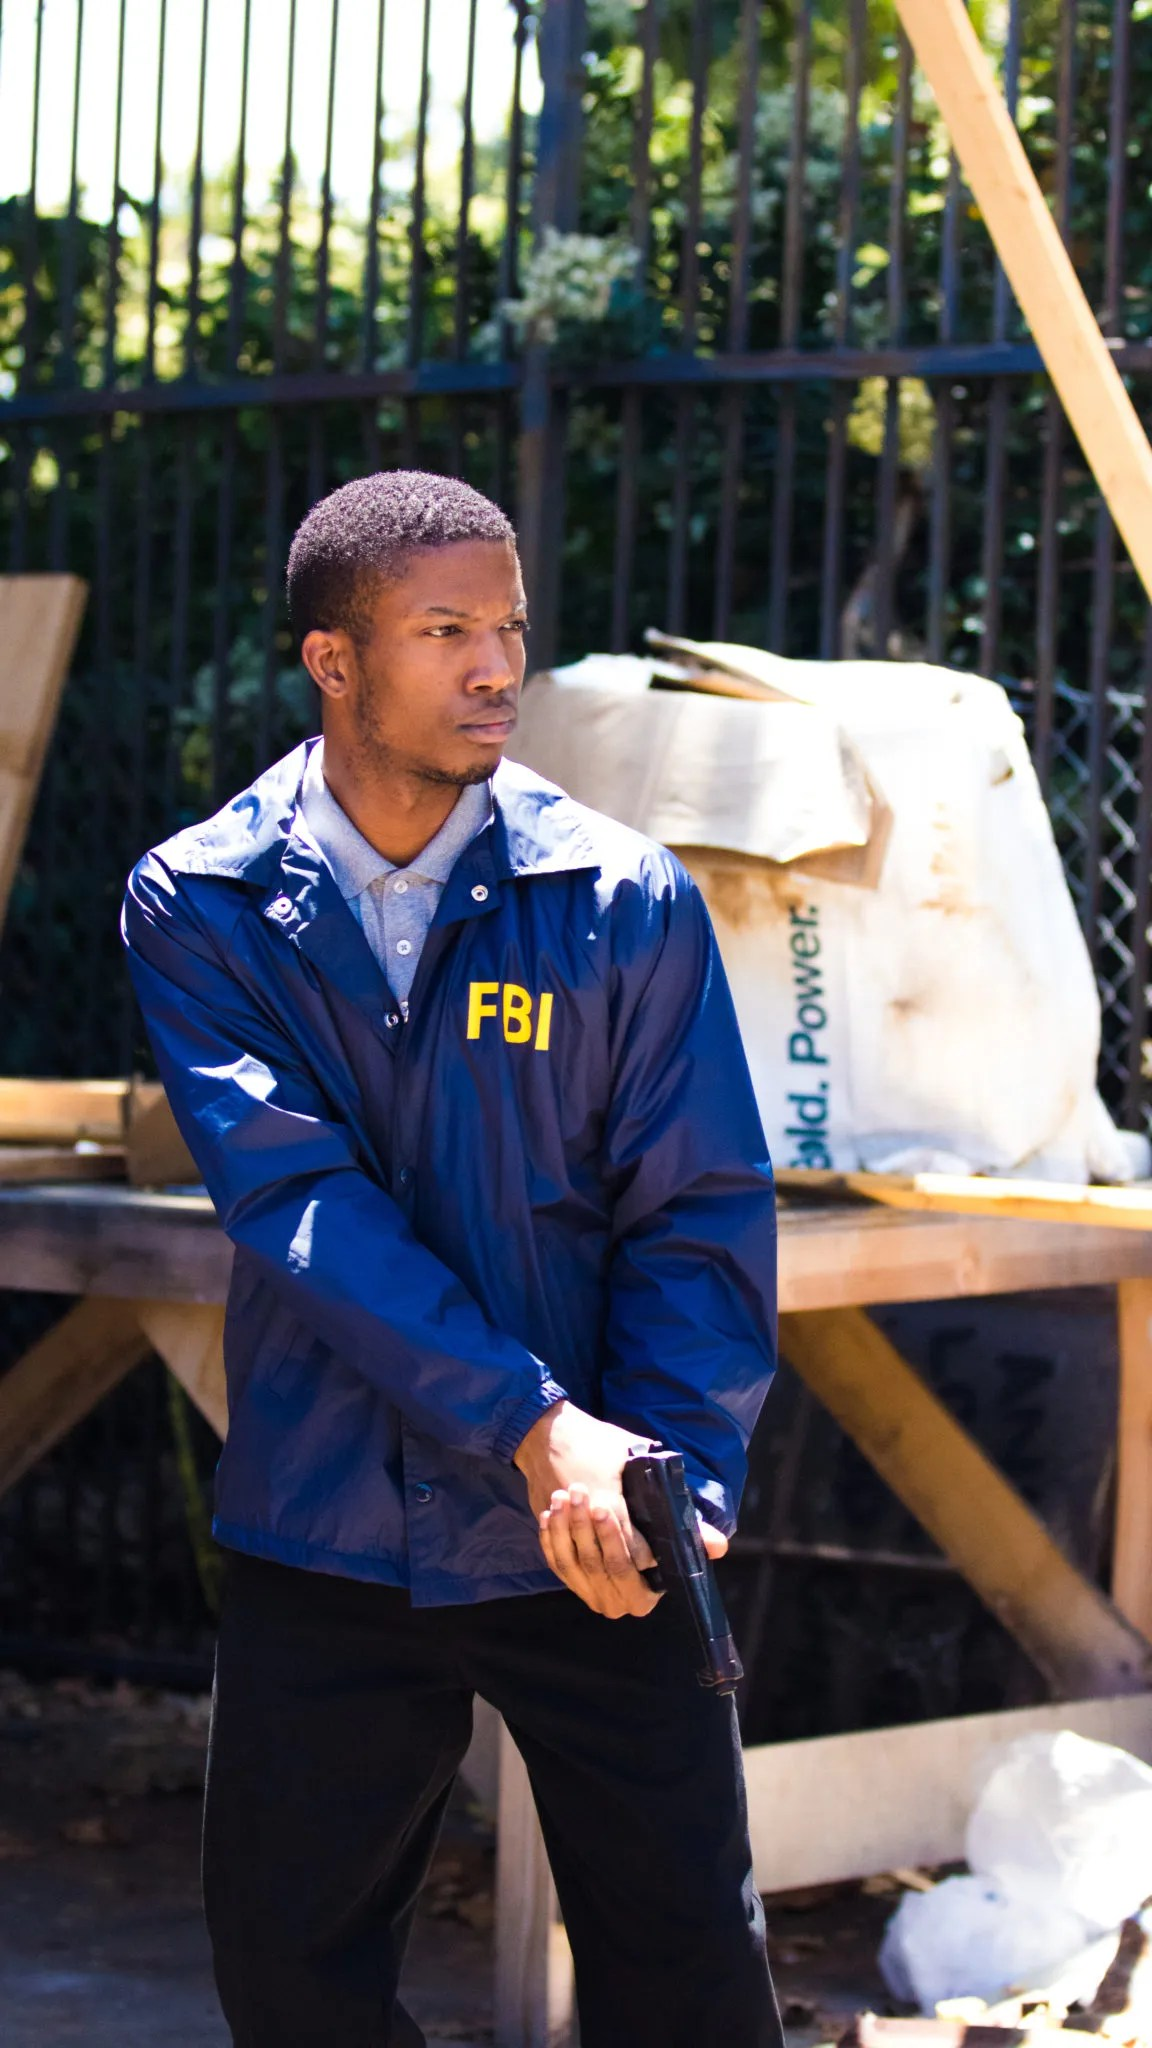 FBI Jacket Costume For Film